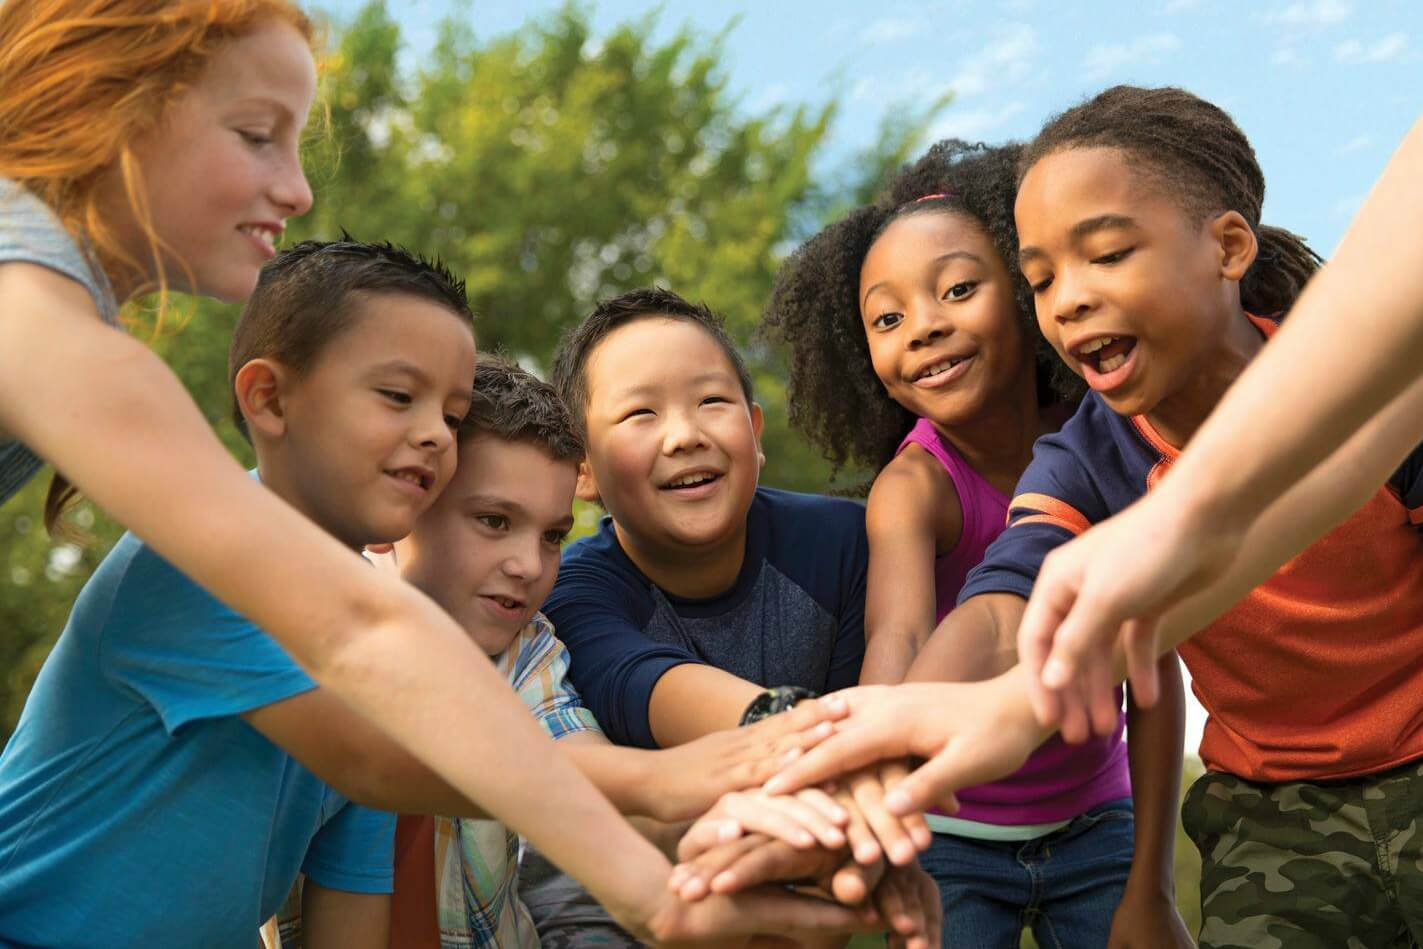 GUIDE TO KID'S SUMMER CAMPS IN METRO DETROIT